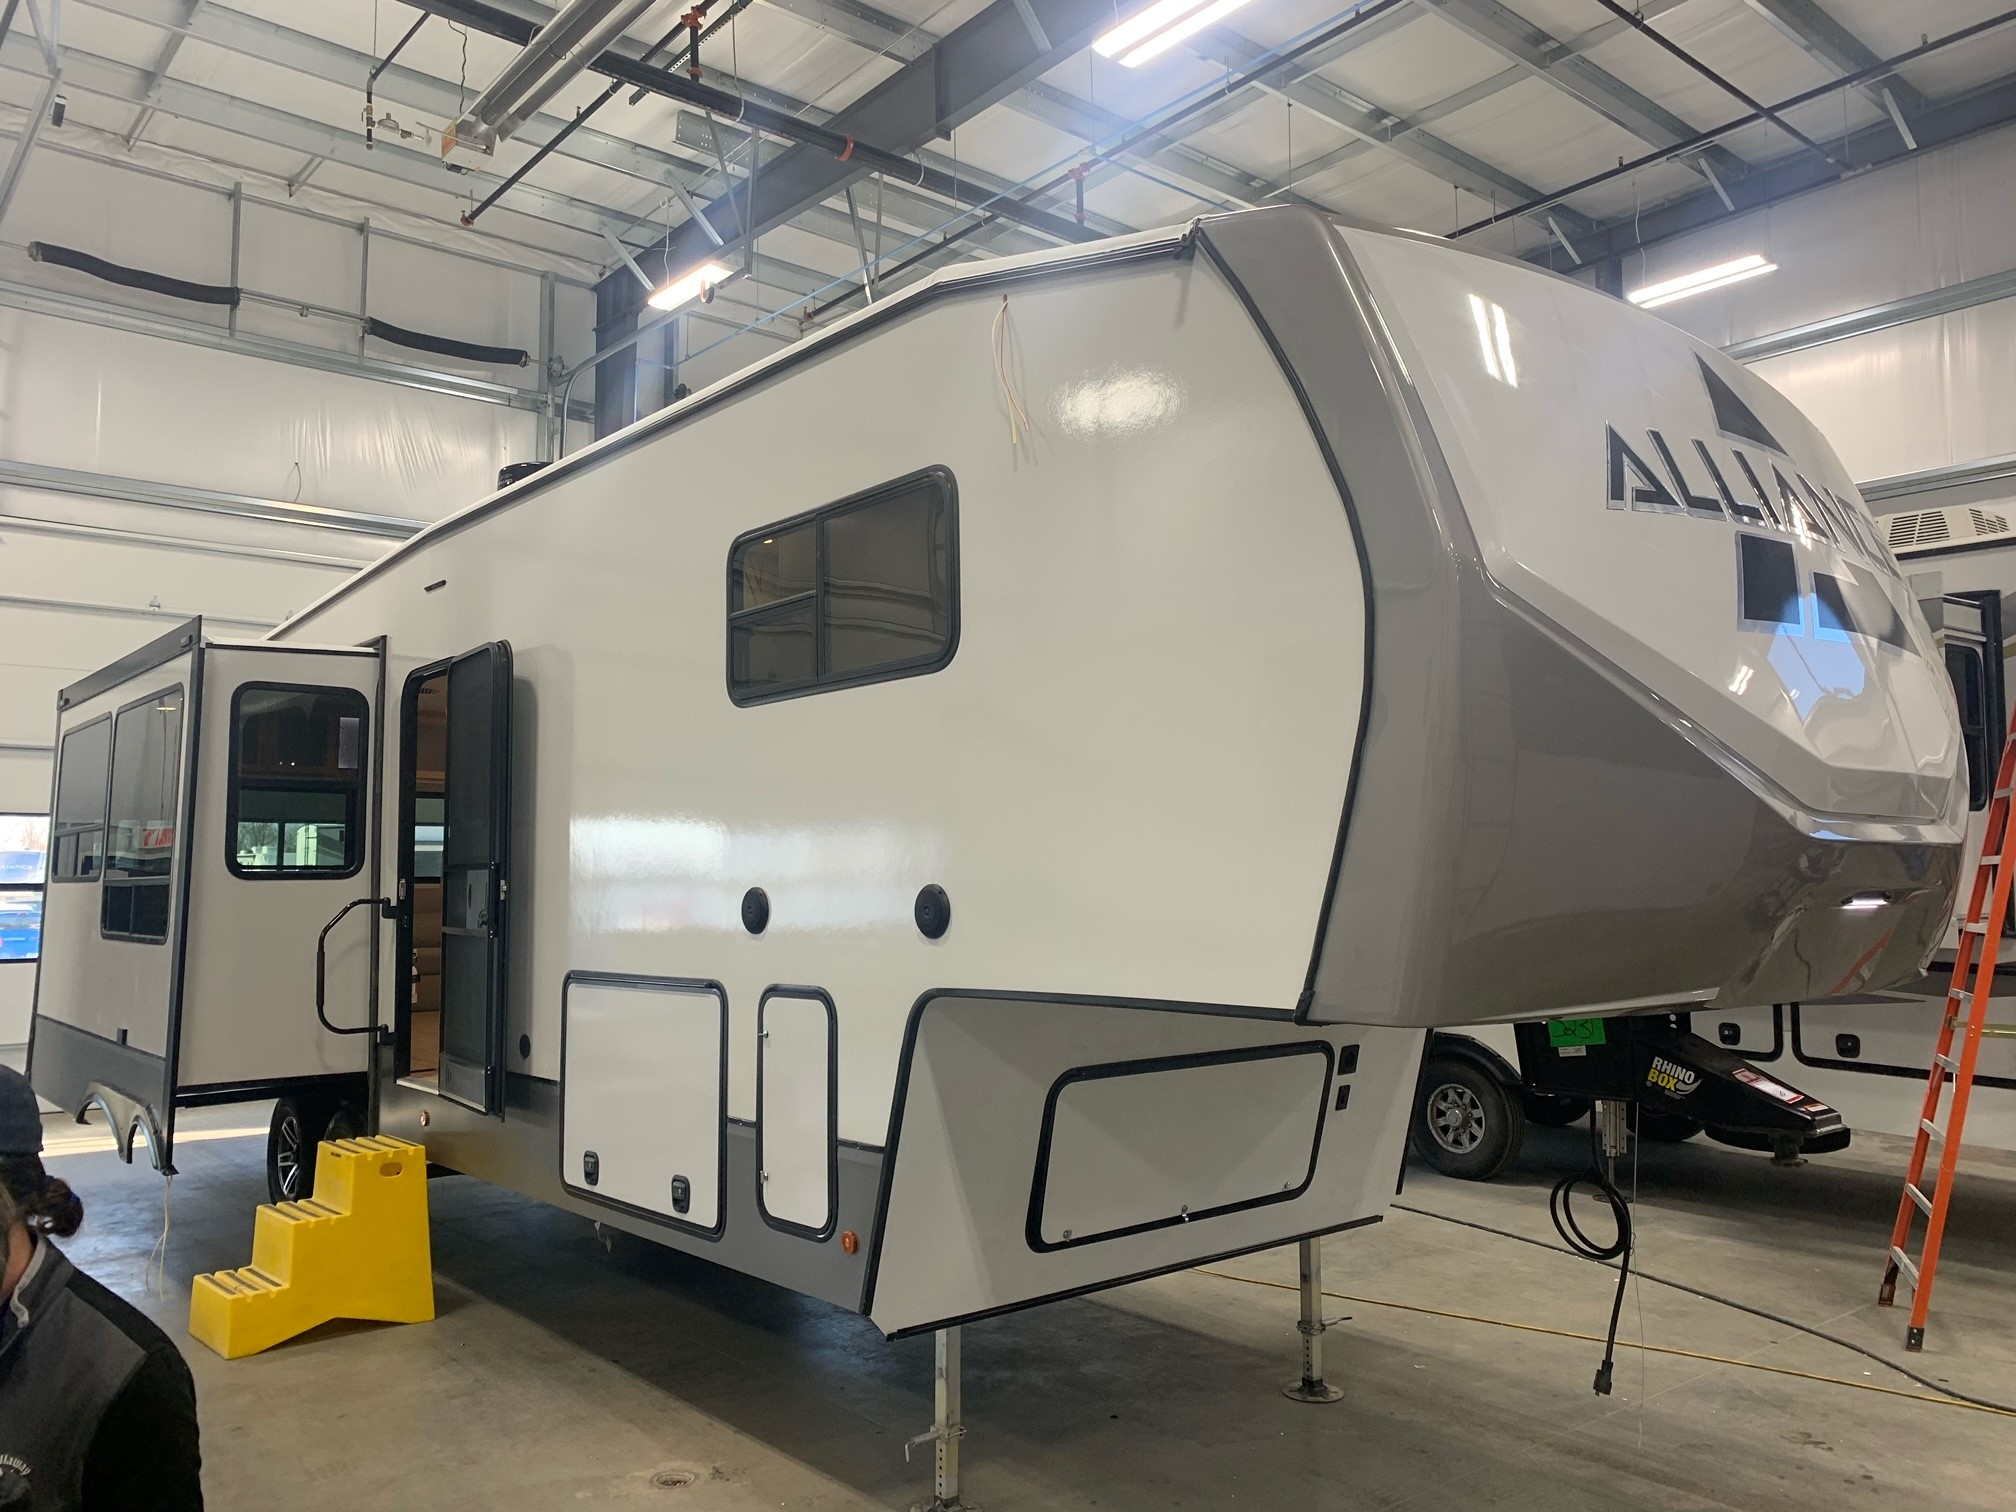 Manufacturer Shares Prototype of RV with Light Wood Interior